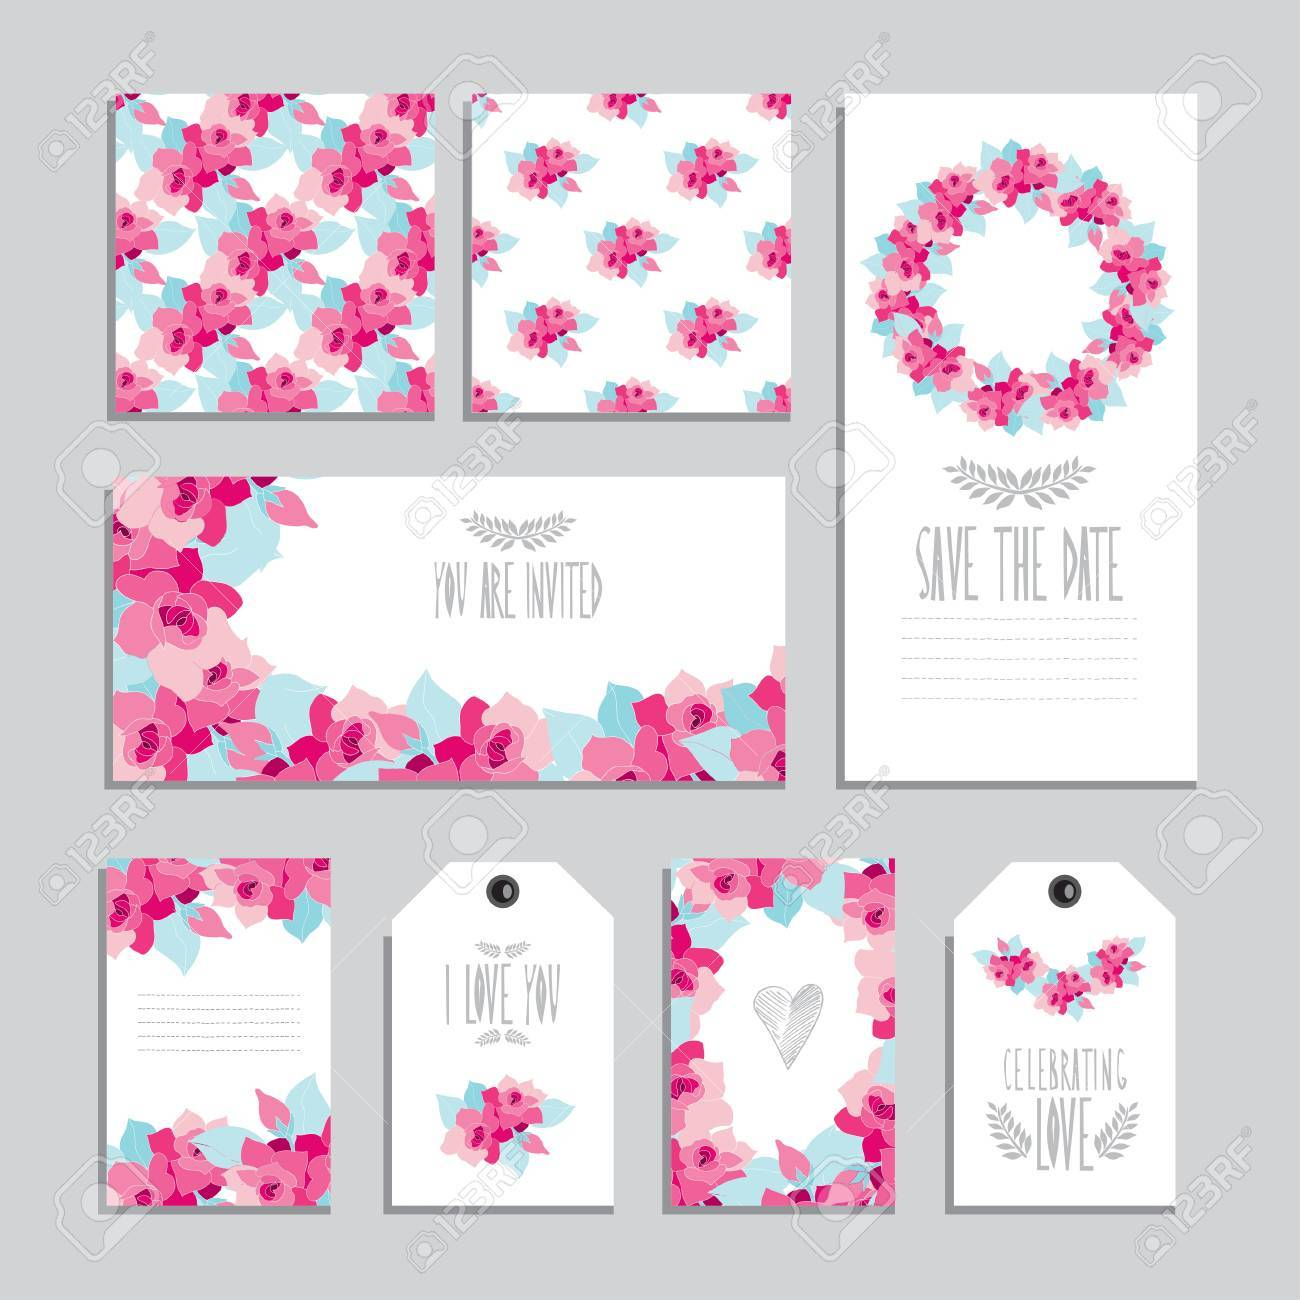 elegant cards and gift tags with gardenia floral bouquets design